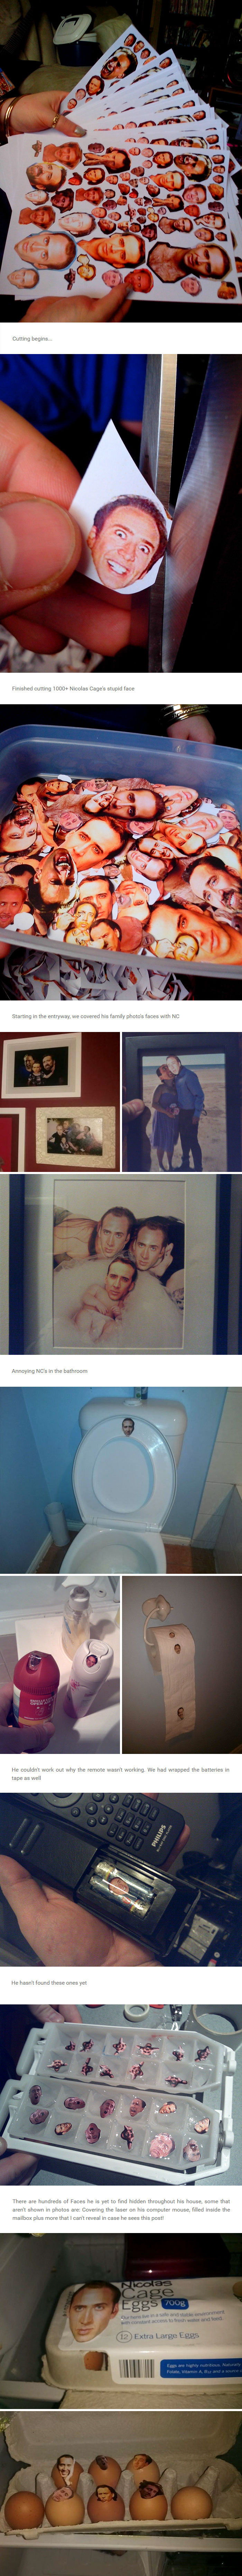 So My Brother Thinks Nicolas Cage Is A Big D-Bag. We Have A History Of Pranking Each Other In Ridiculous Ways, So My Gf And I Came Up With The Idea